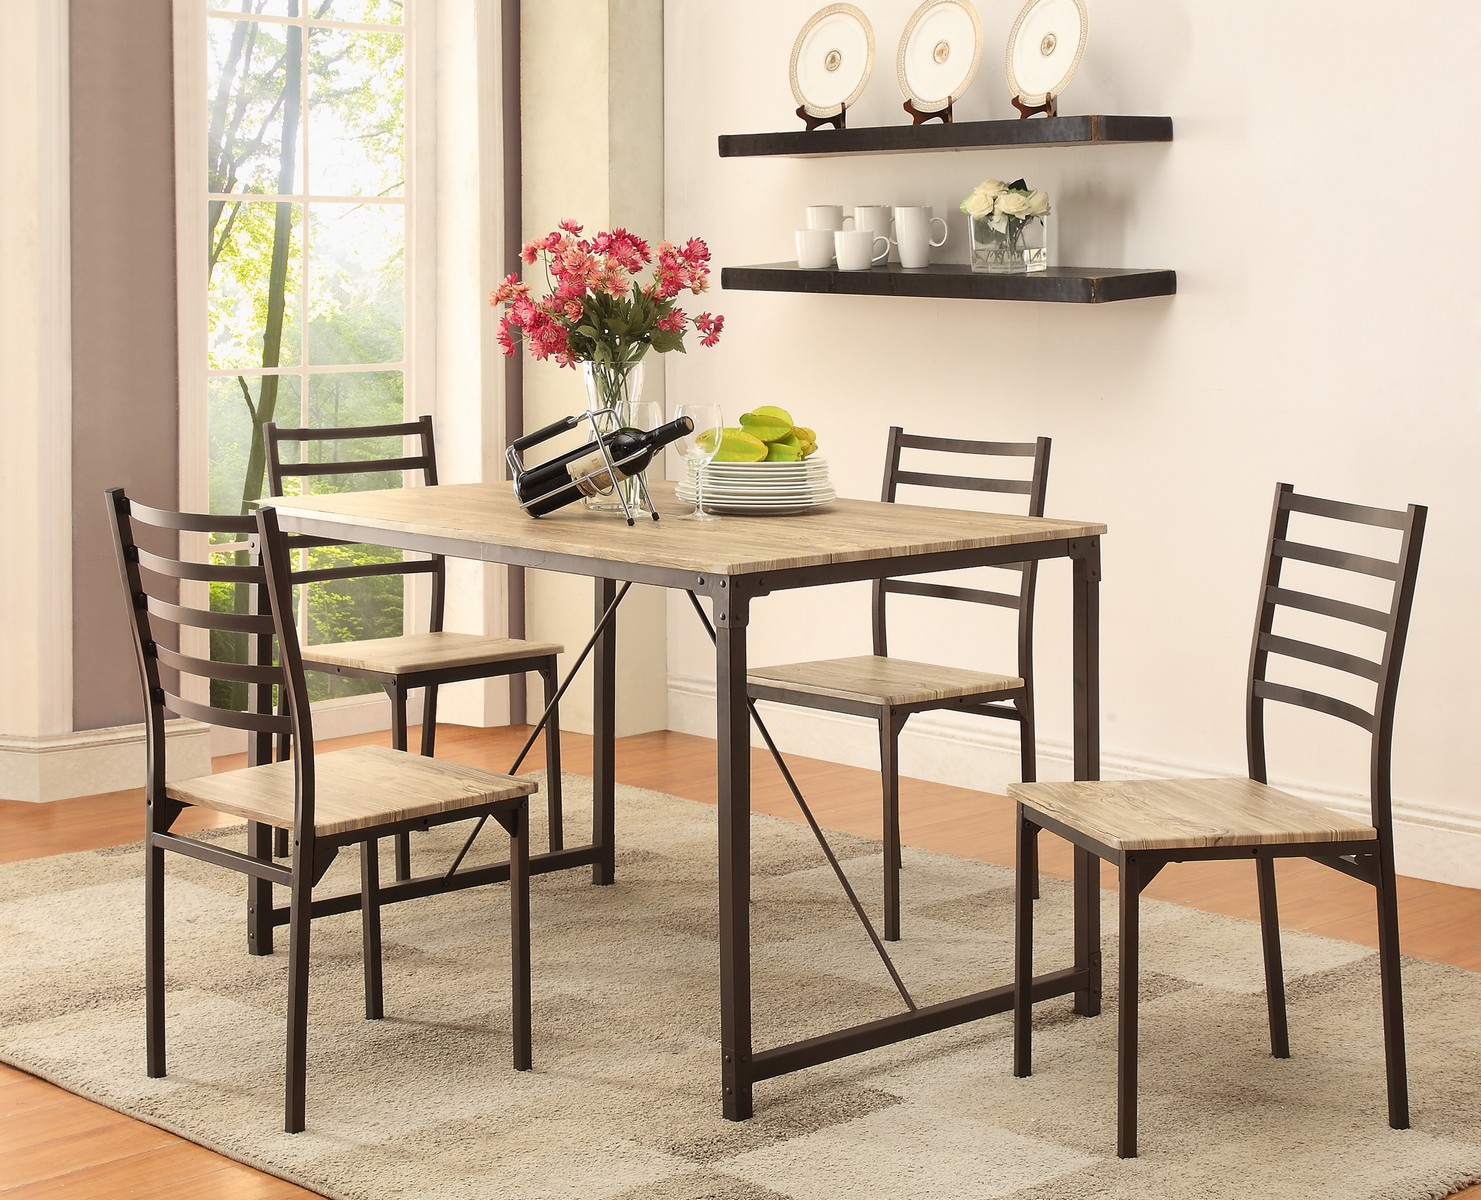 Coaster 150127 5-Piece Dining Set - Bronze